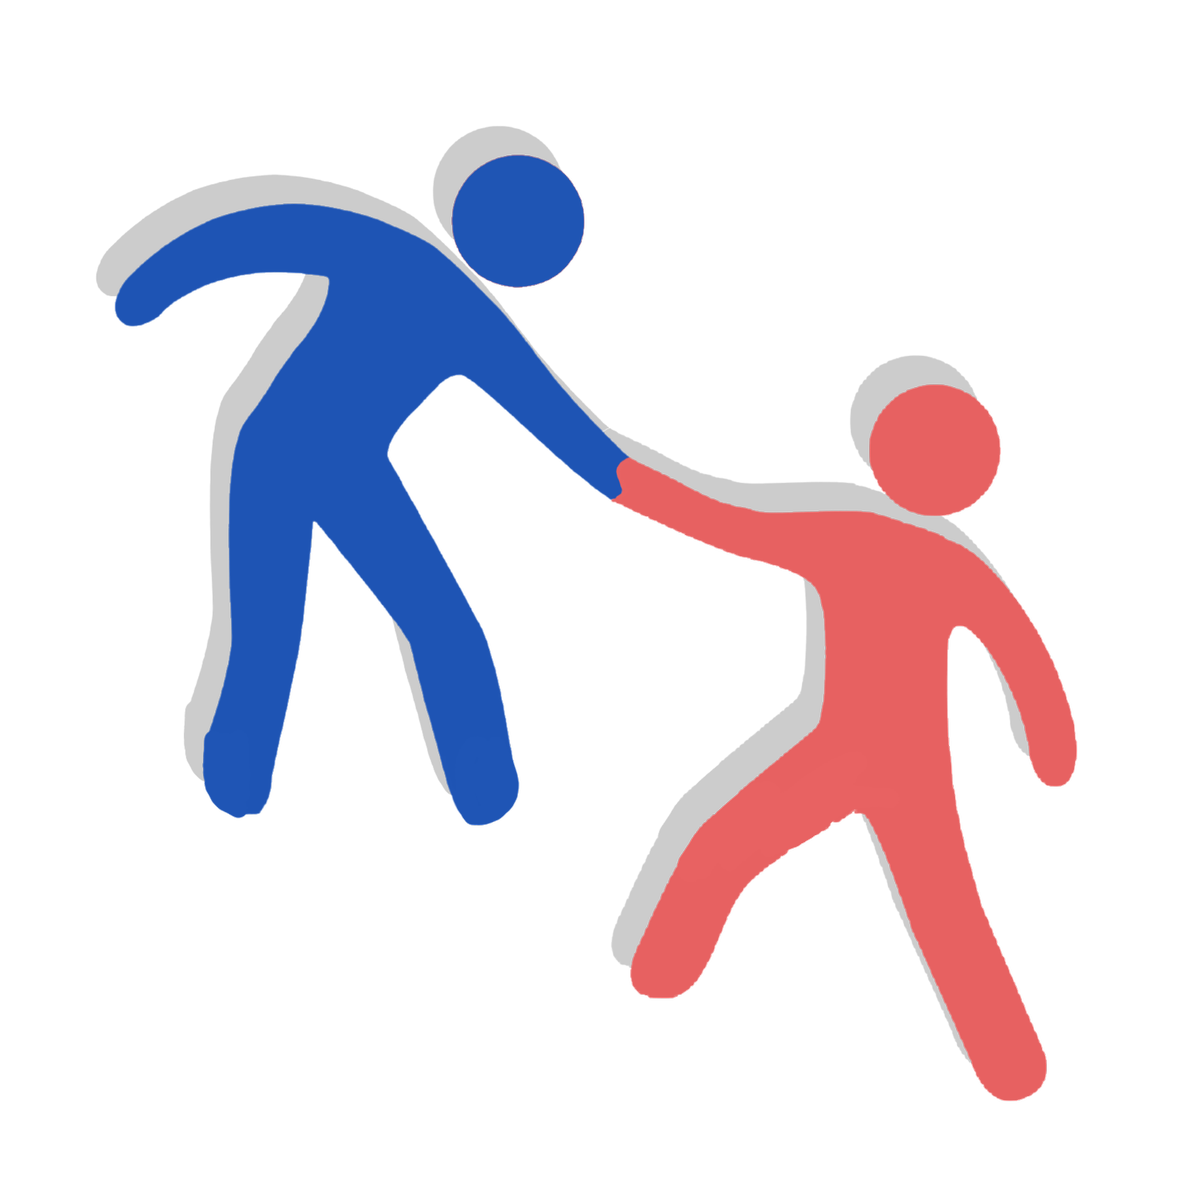 Volunteering clipart non profit. Ncvo on twitter knowhow